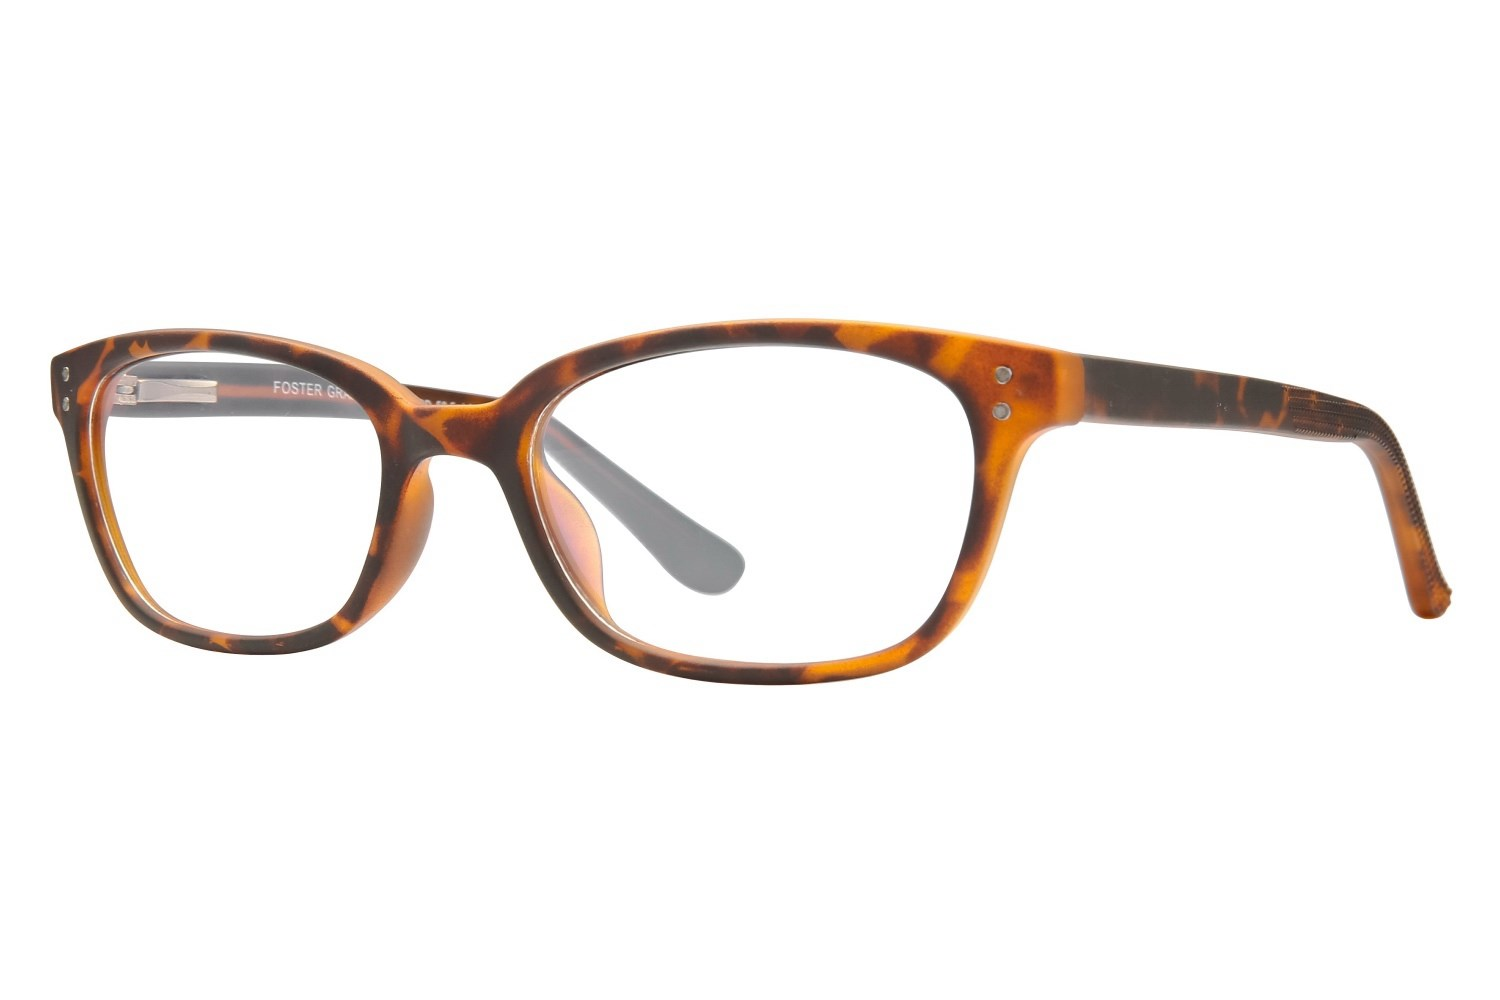 Foster Grant Sheila Reading Glasses - FilePhotoPreservers